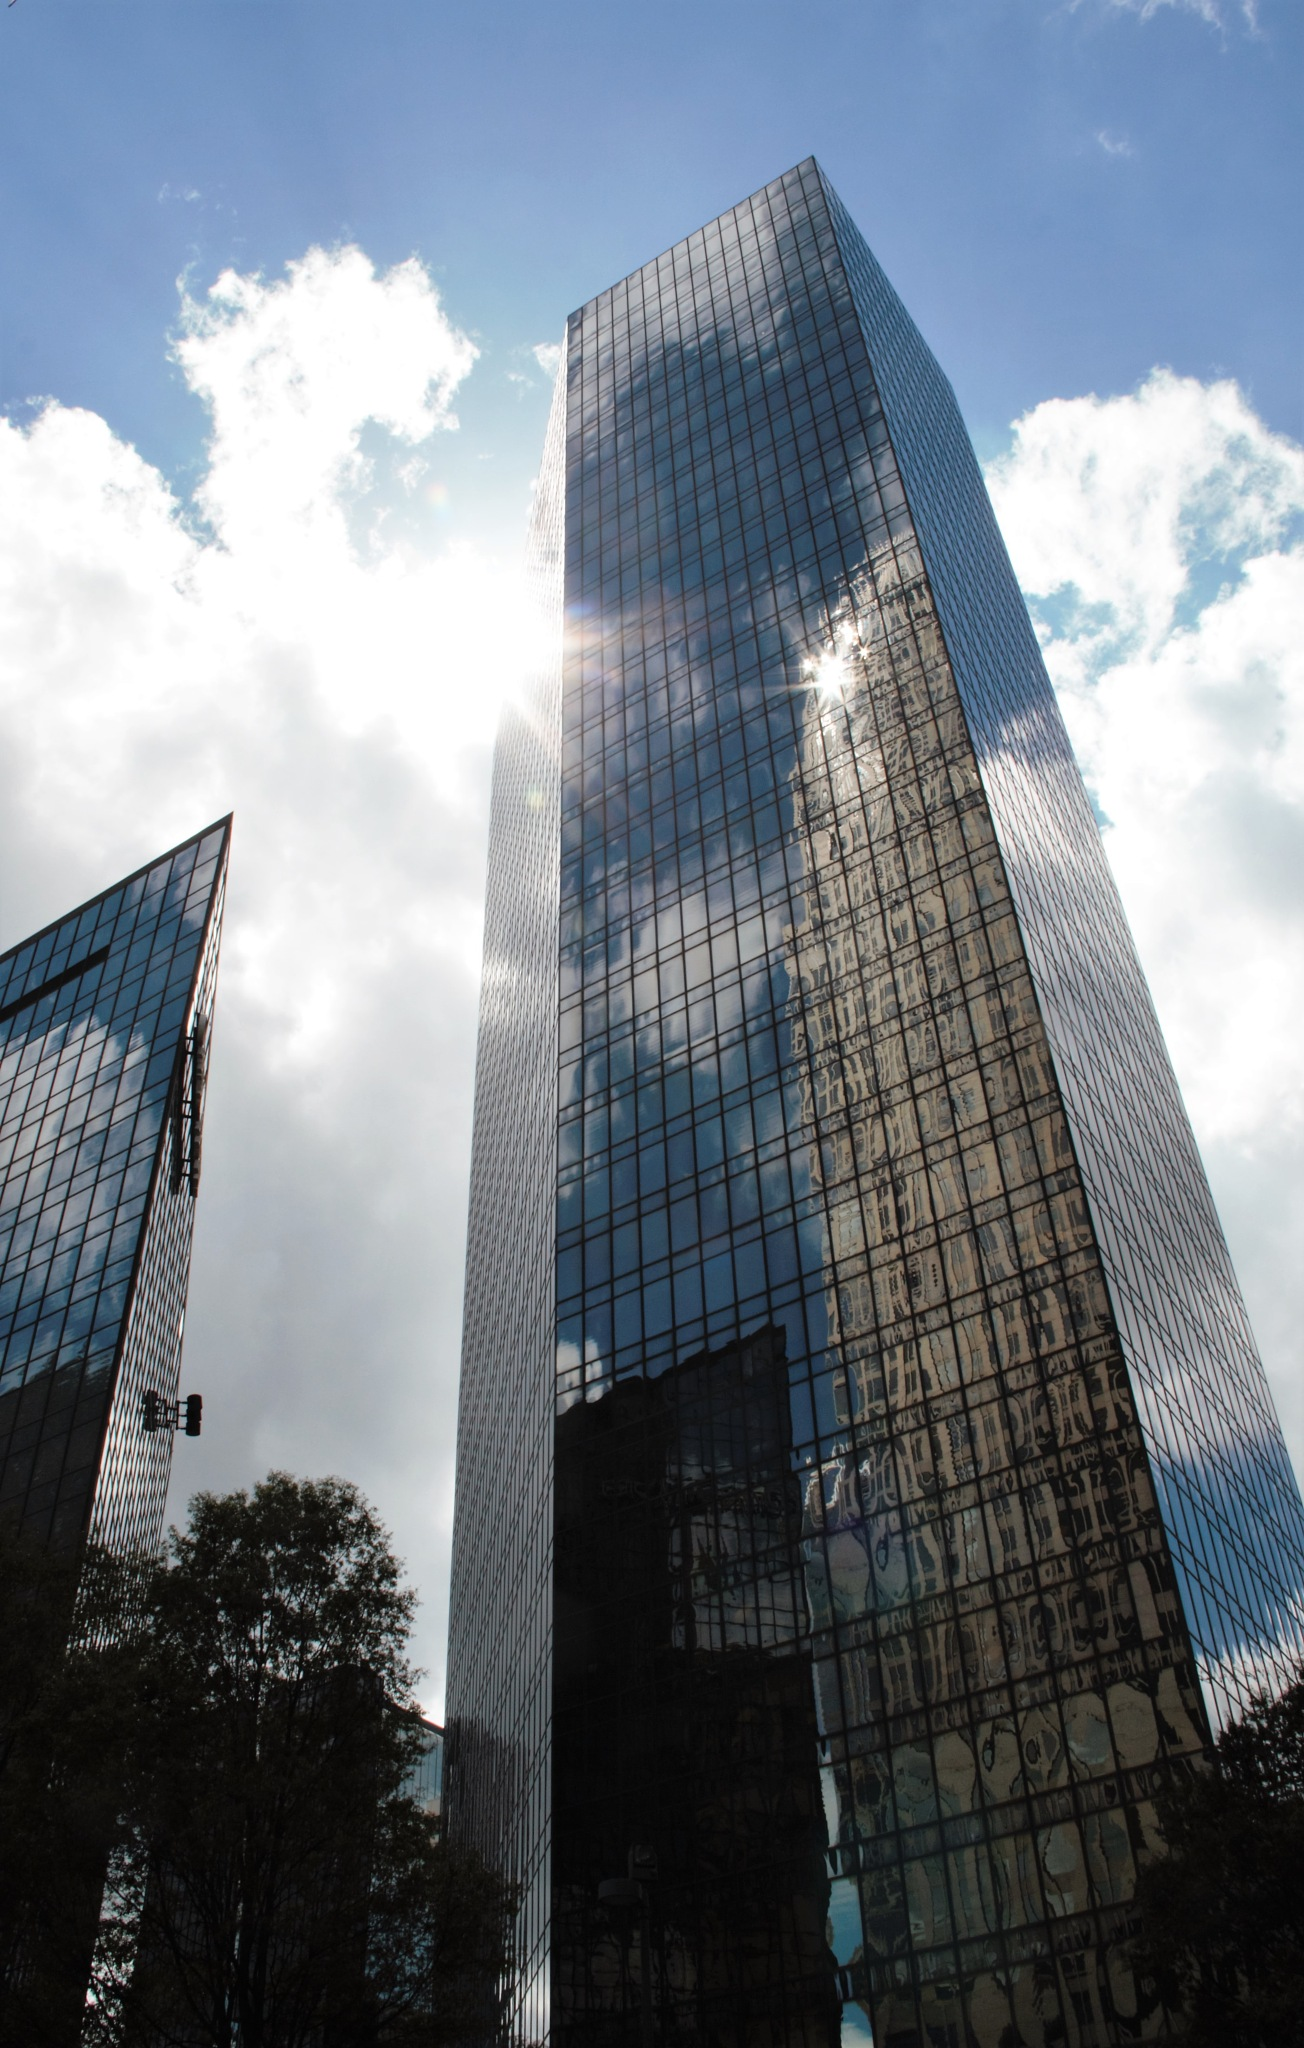 Skyscraper Reflections by Lisa Marshall Moore